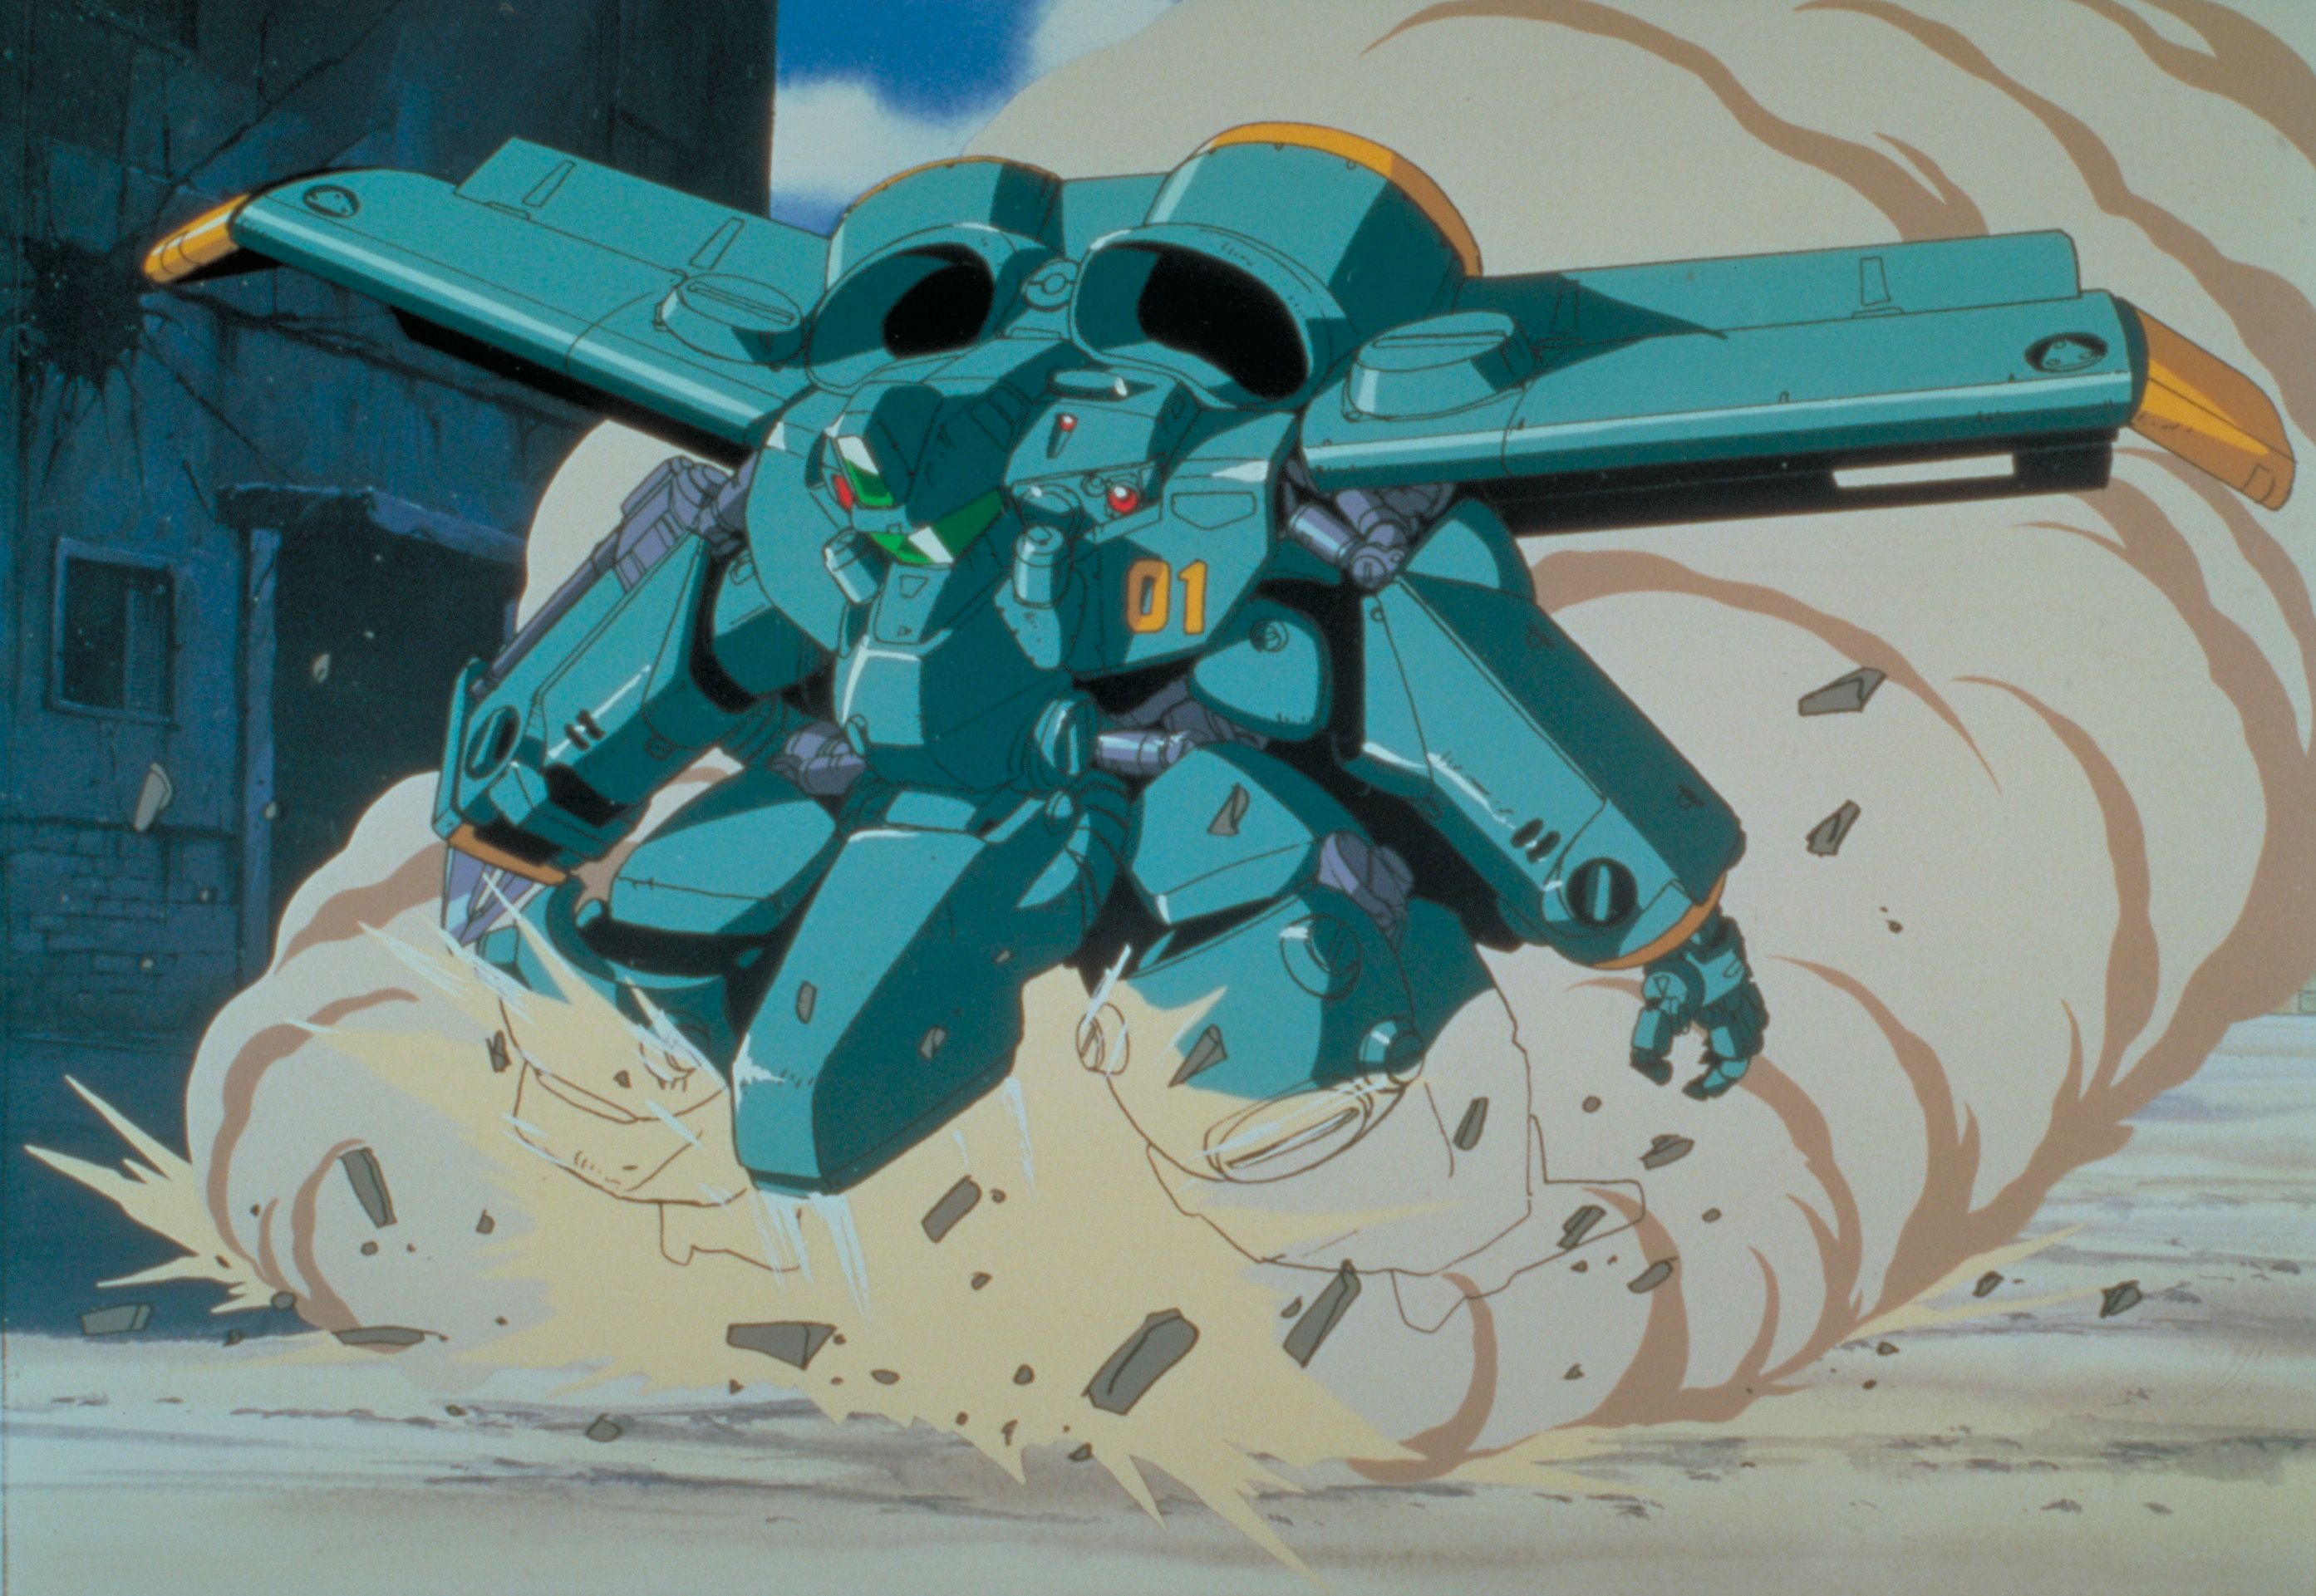 The MADOX-01 experimental powered armor suit launches into a hover mode, kicking up a huge cloud of dust amidst a ruined cityscape, in a scene from the 1987 Metal Skin Panic MADOX-01 original animation video.